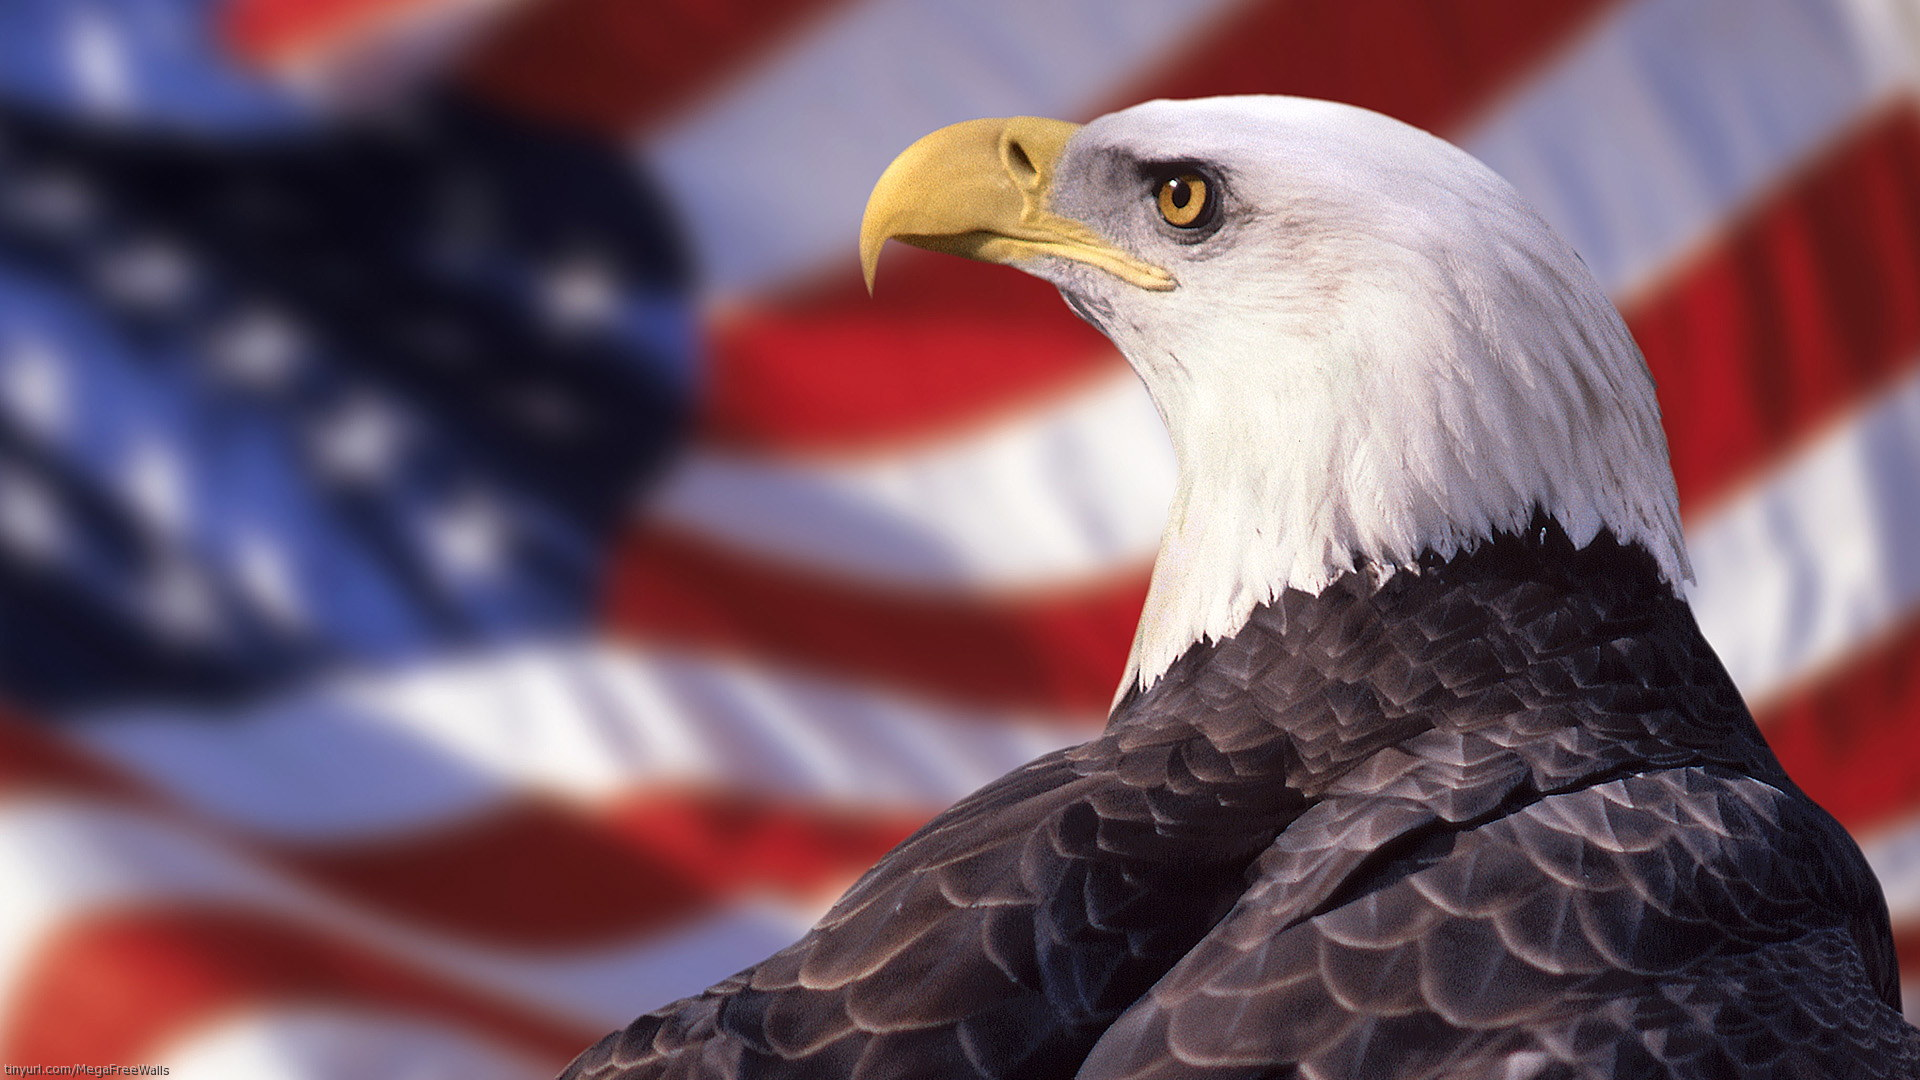 Independence Day Desktop Wallpapers Themes 4th of July 1920x1080